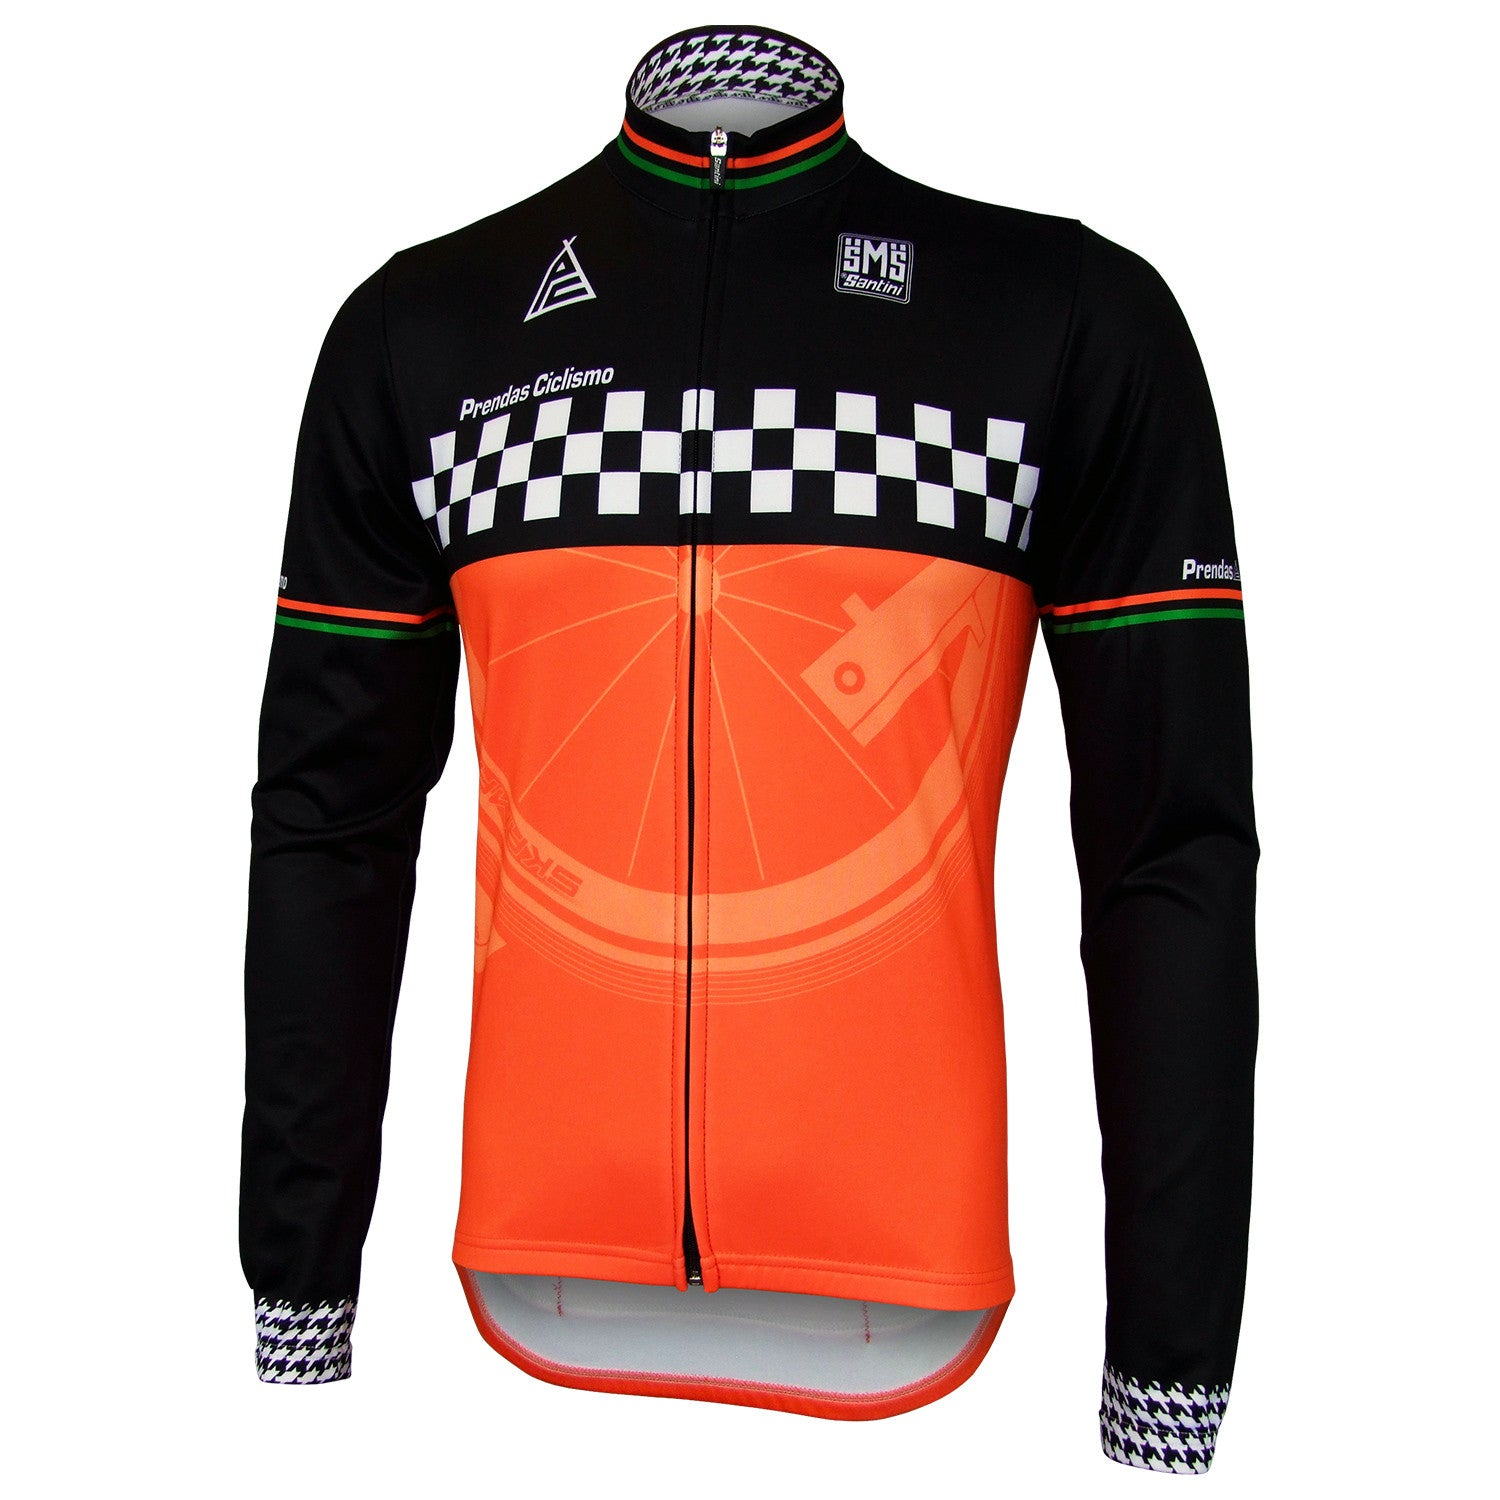 55ad6539d Cycling jerseys available to buy with short sleeves or long sleeves ...